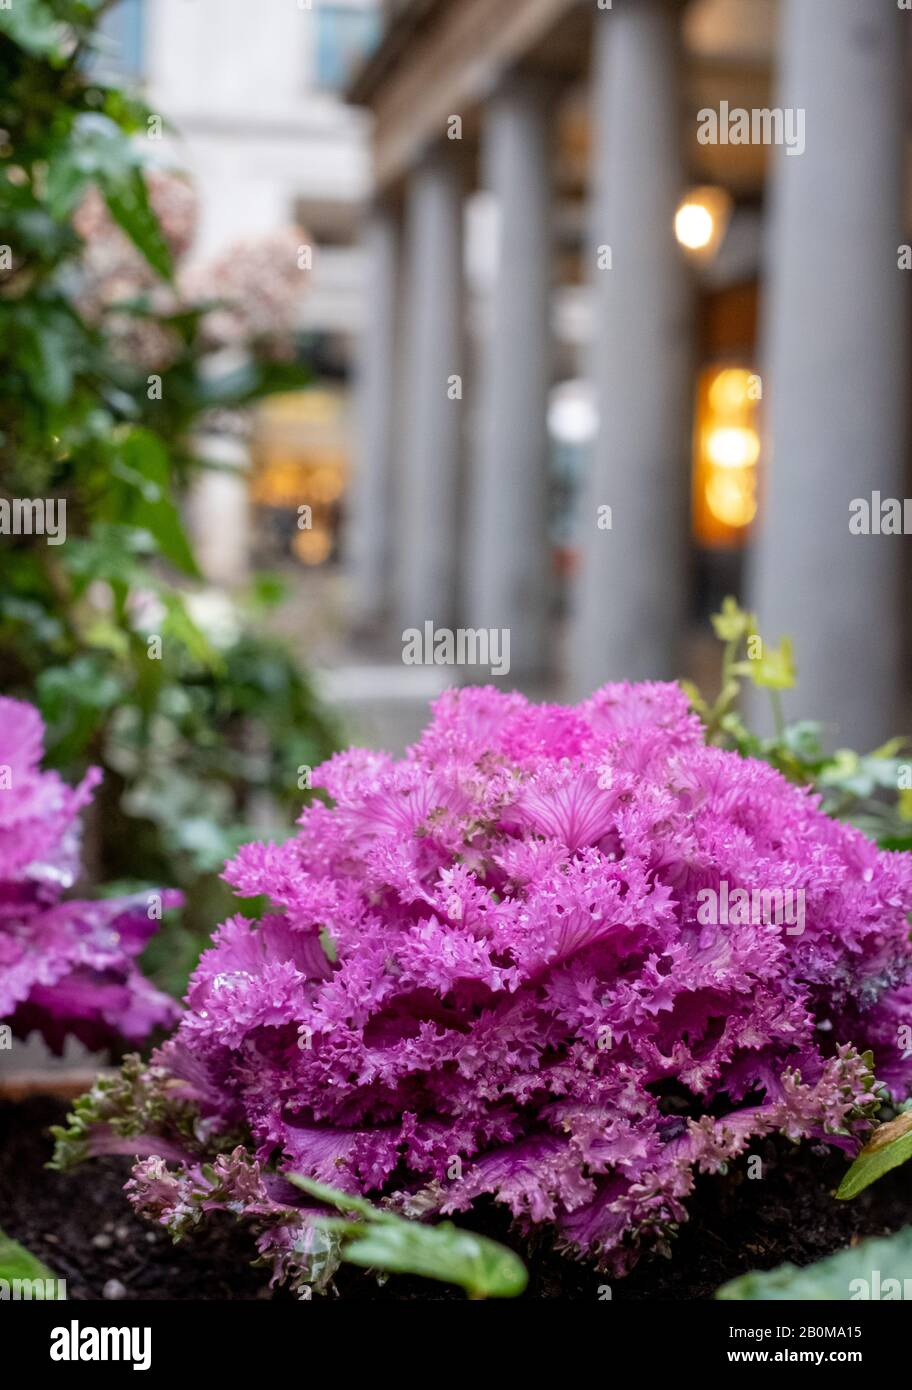 Purple Ornamental Cabbage Plants Growing Amongst Other Plants Photographed In The Piazza At Covent Garden Historic Market London Uk Stock Photo Alamy